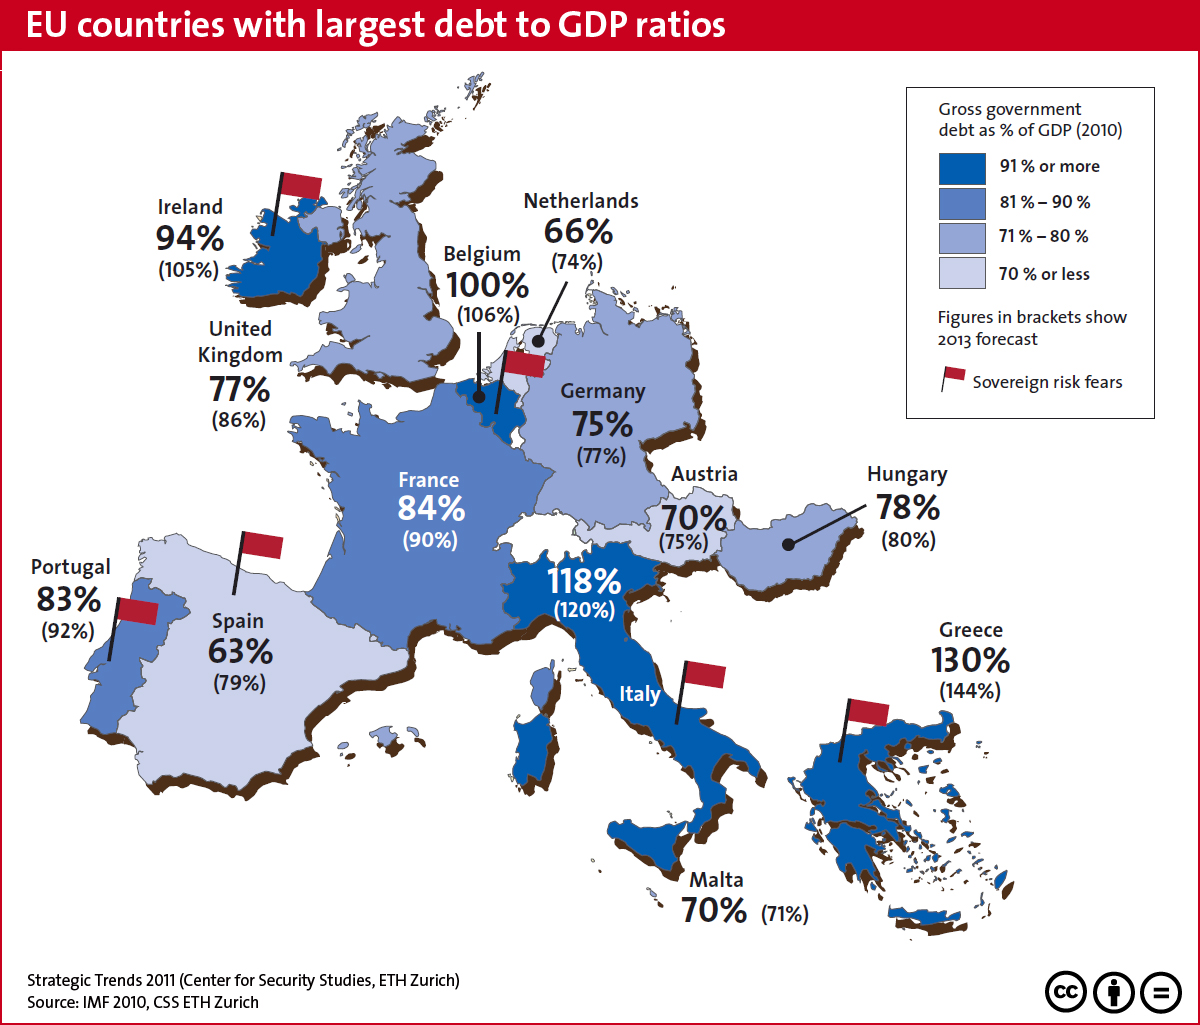 EU countries with largest debt to GDP ratios